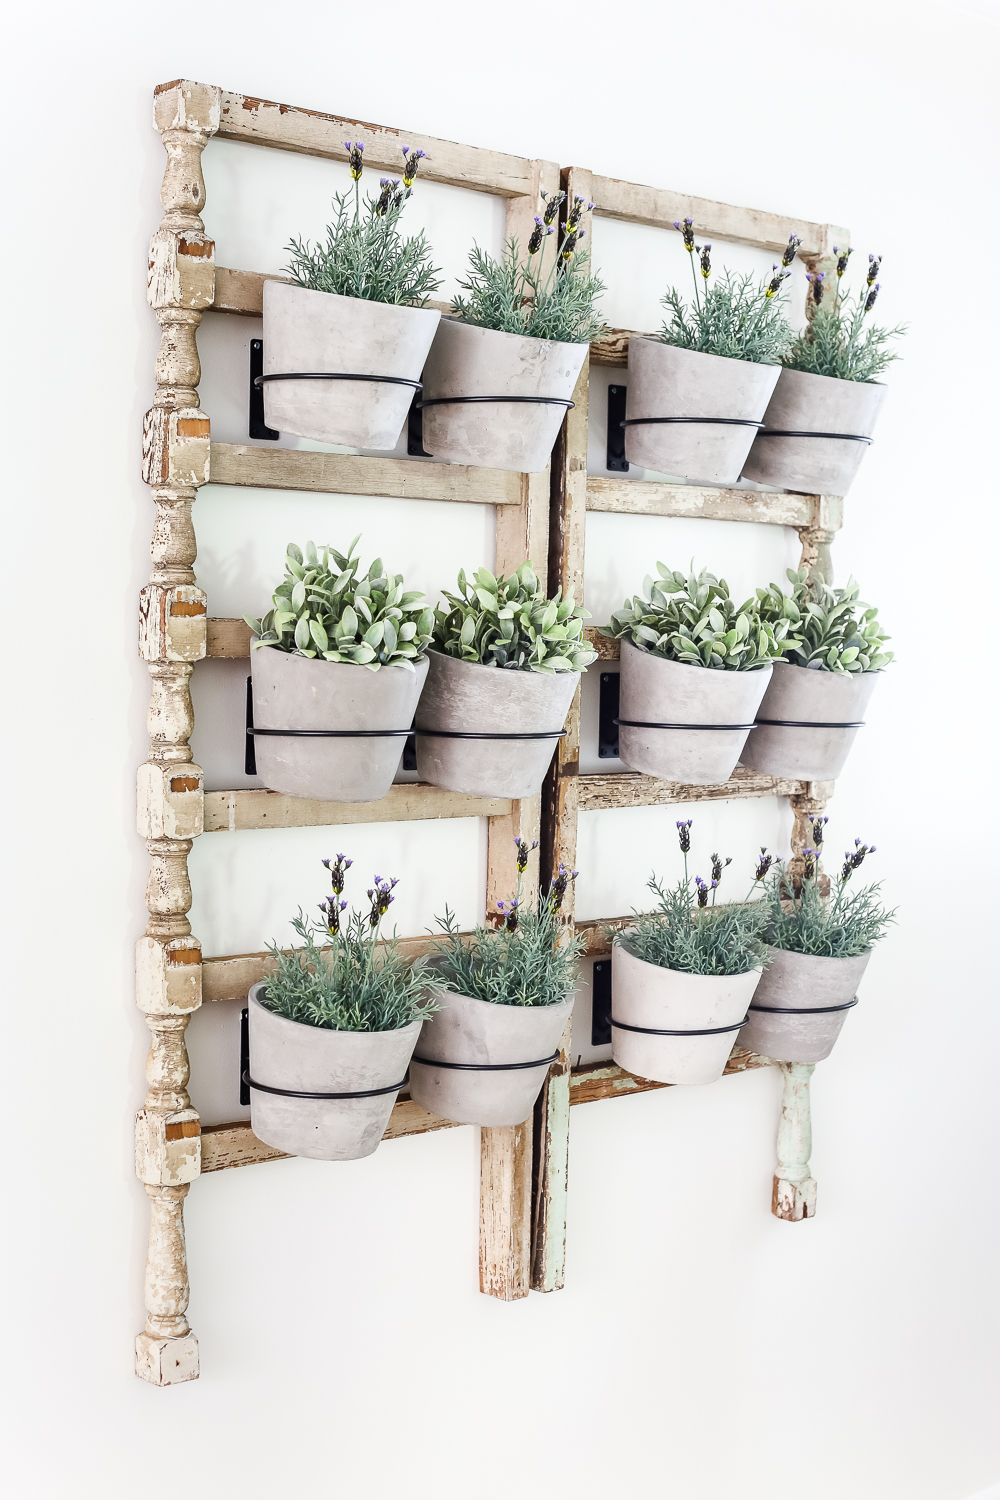 These hanging wall planters add a bohemian feel to this farmhouse space.